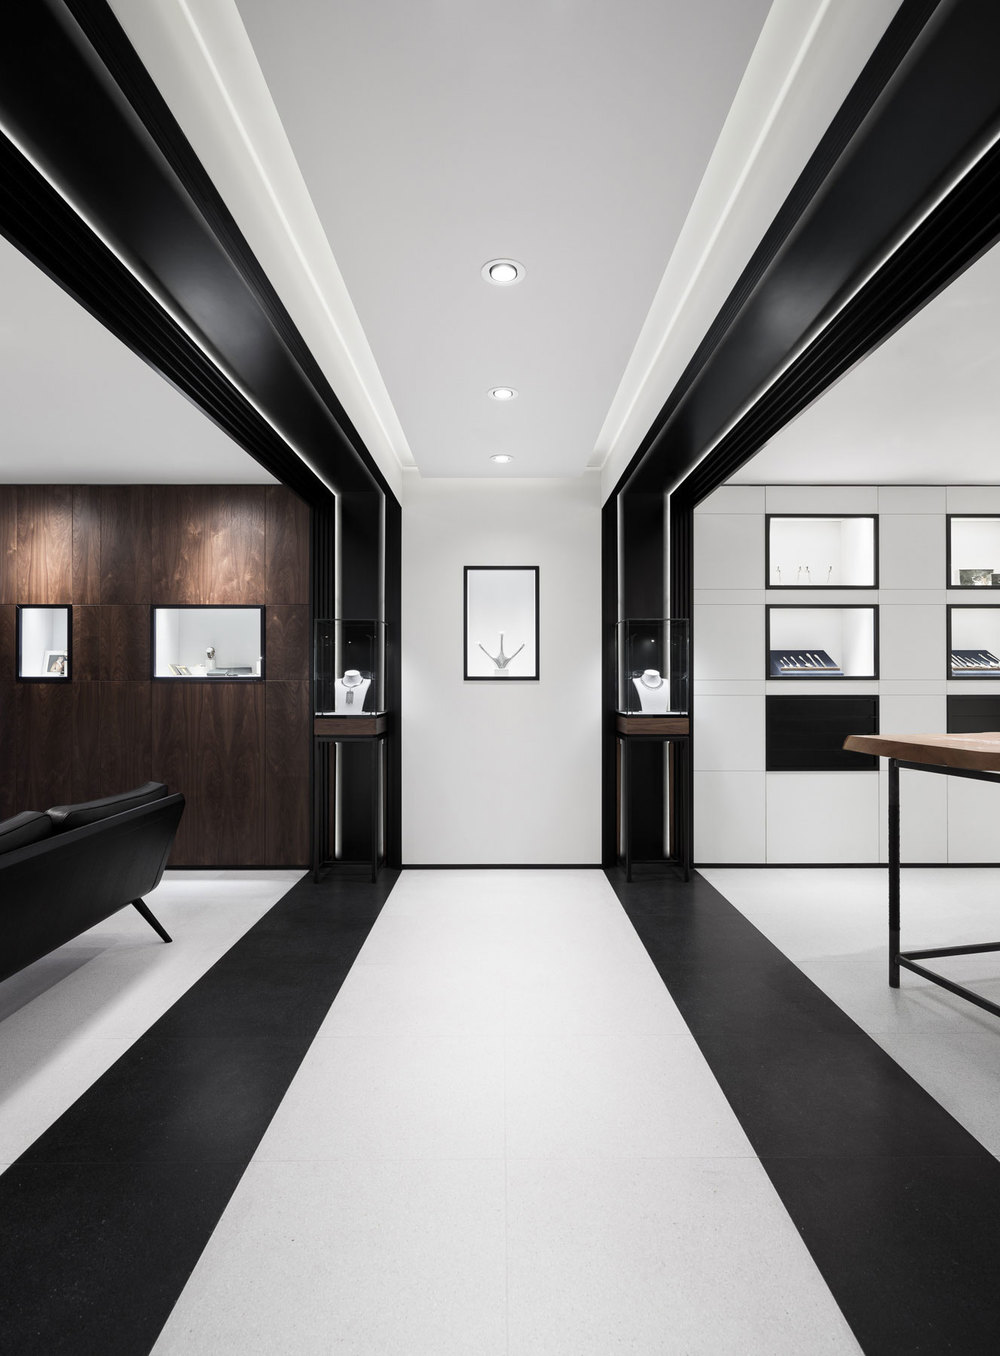 David thulstrup designs symmetrical space for georg jensen for Space architecture and design